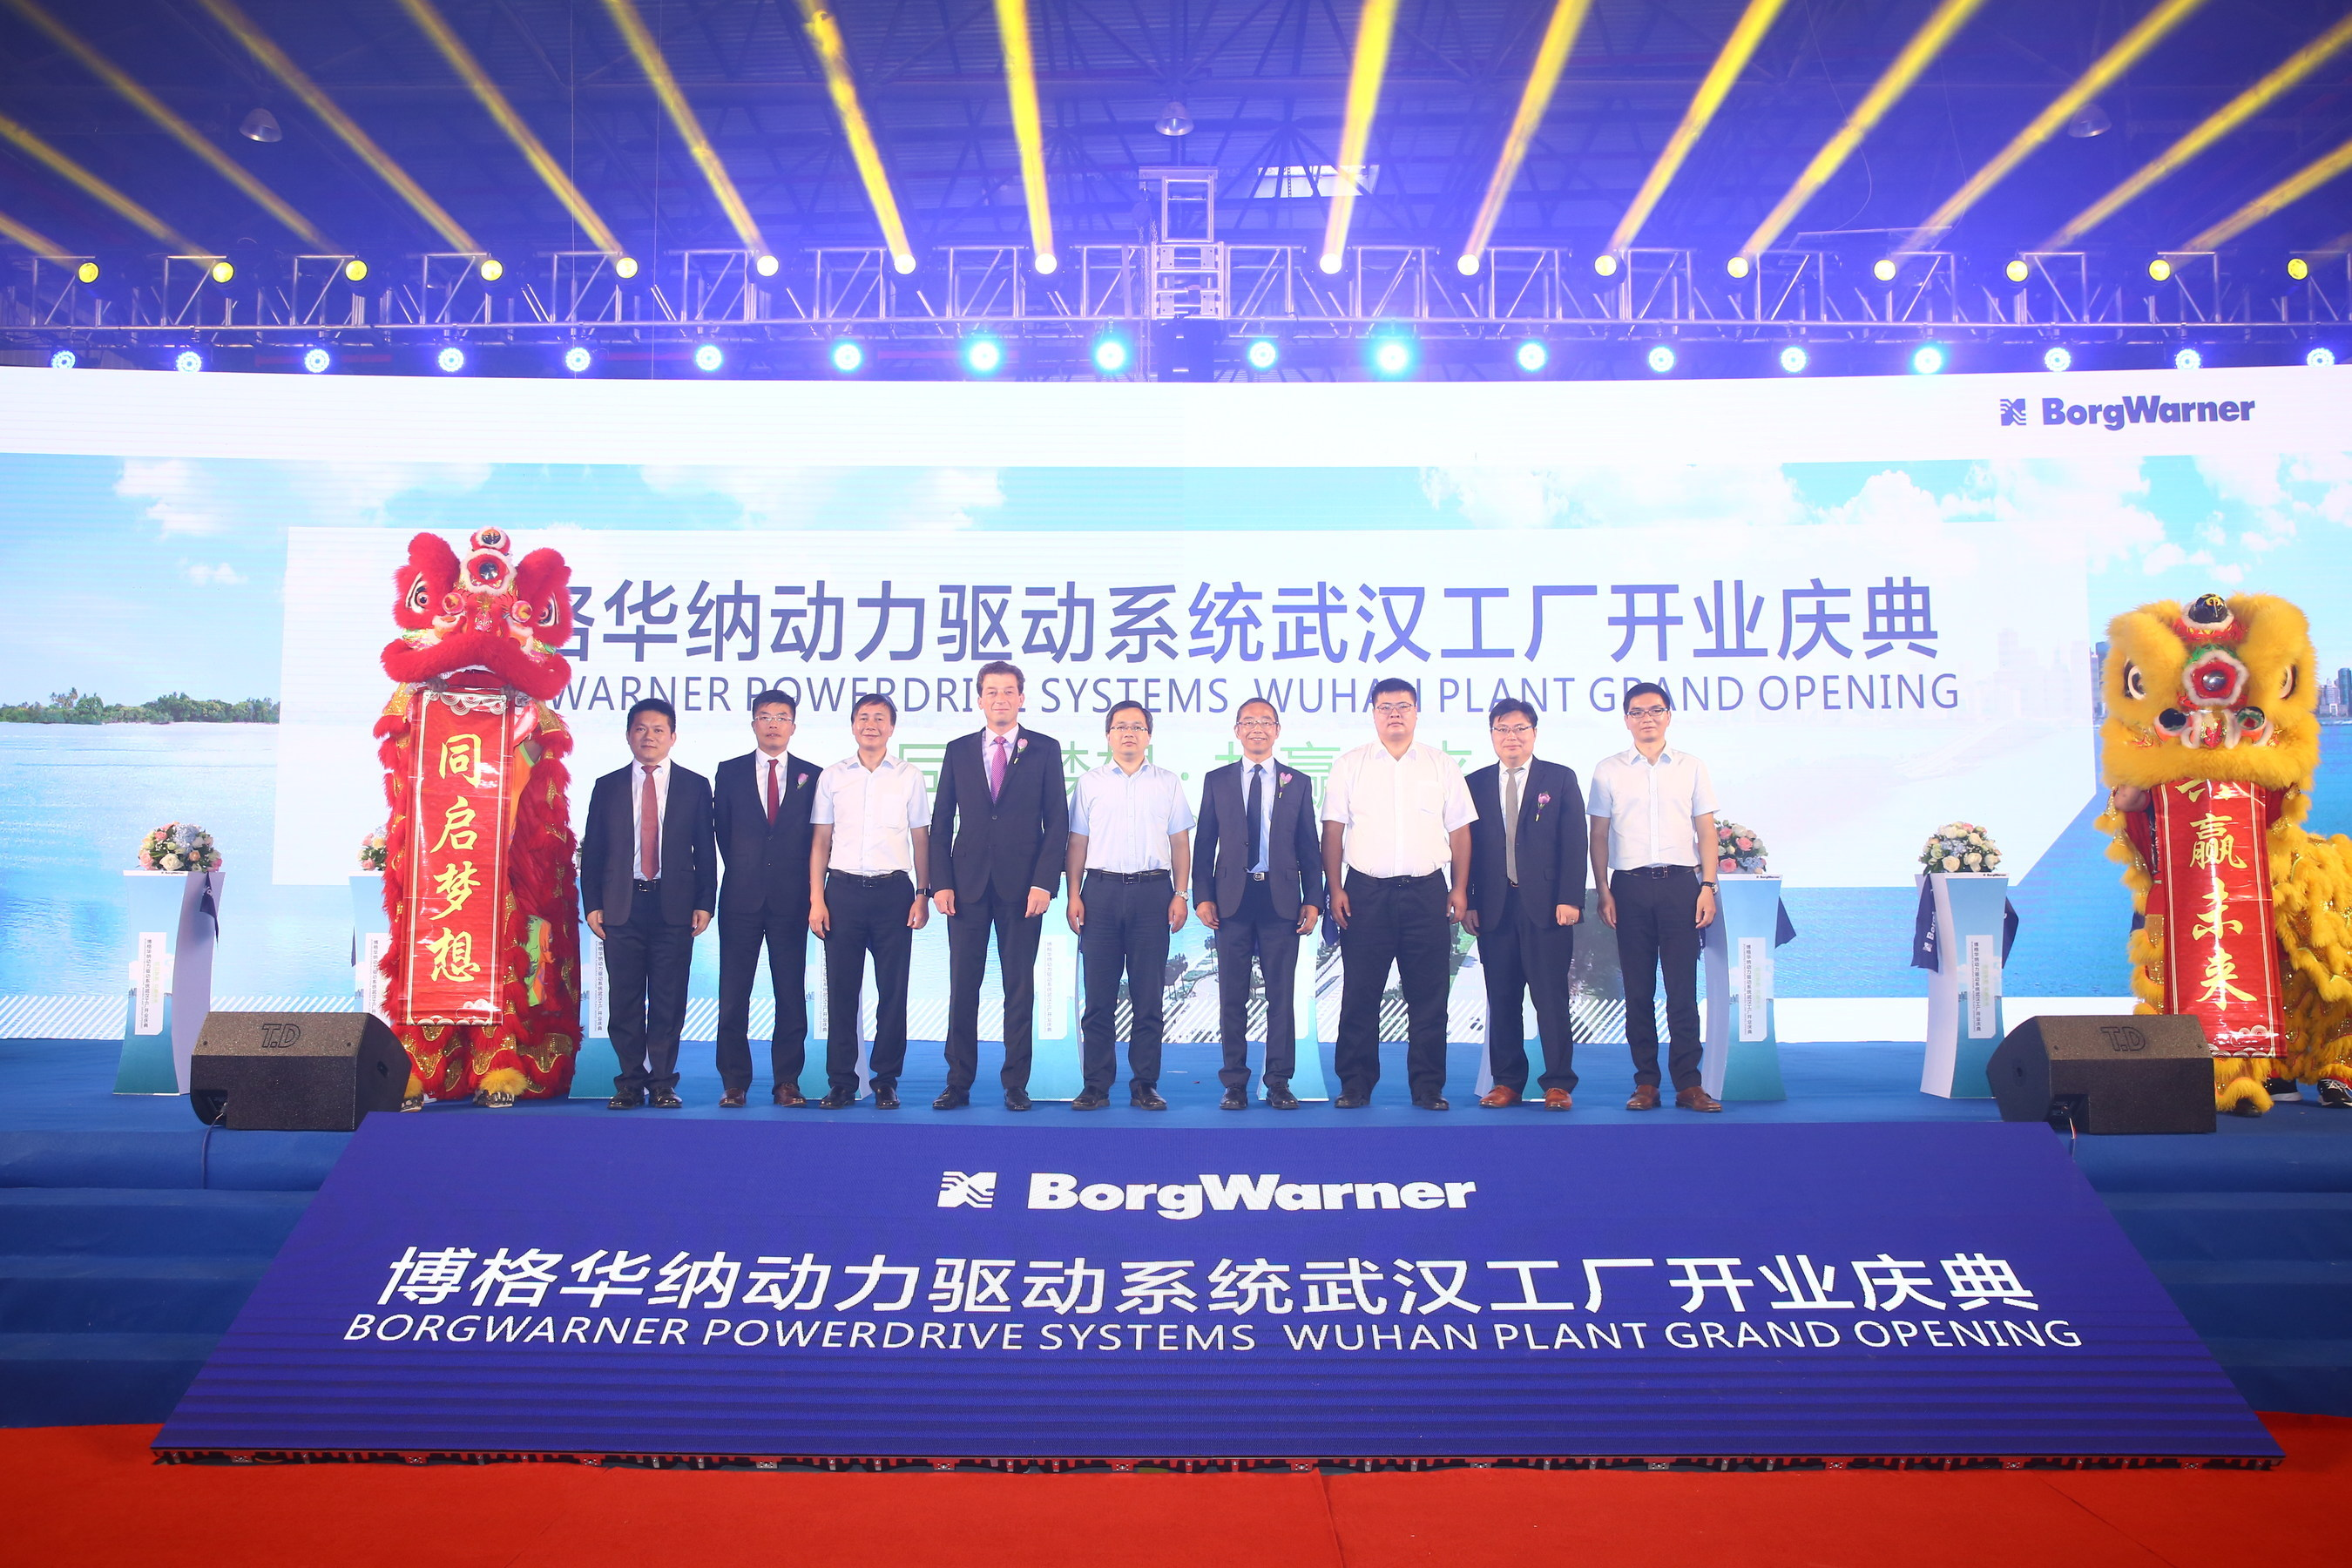 Local government officials, customers, suppliers and media representatives joined BorgWarner's management and employees in celebrating the opening of the BorgWarner PowerDrive Systems Wuhan Plant.